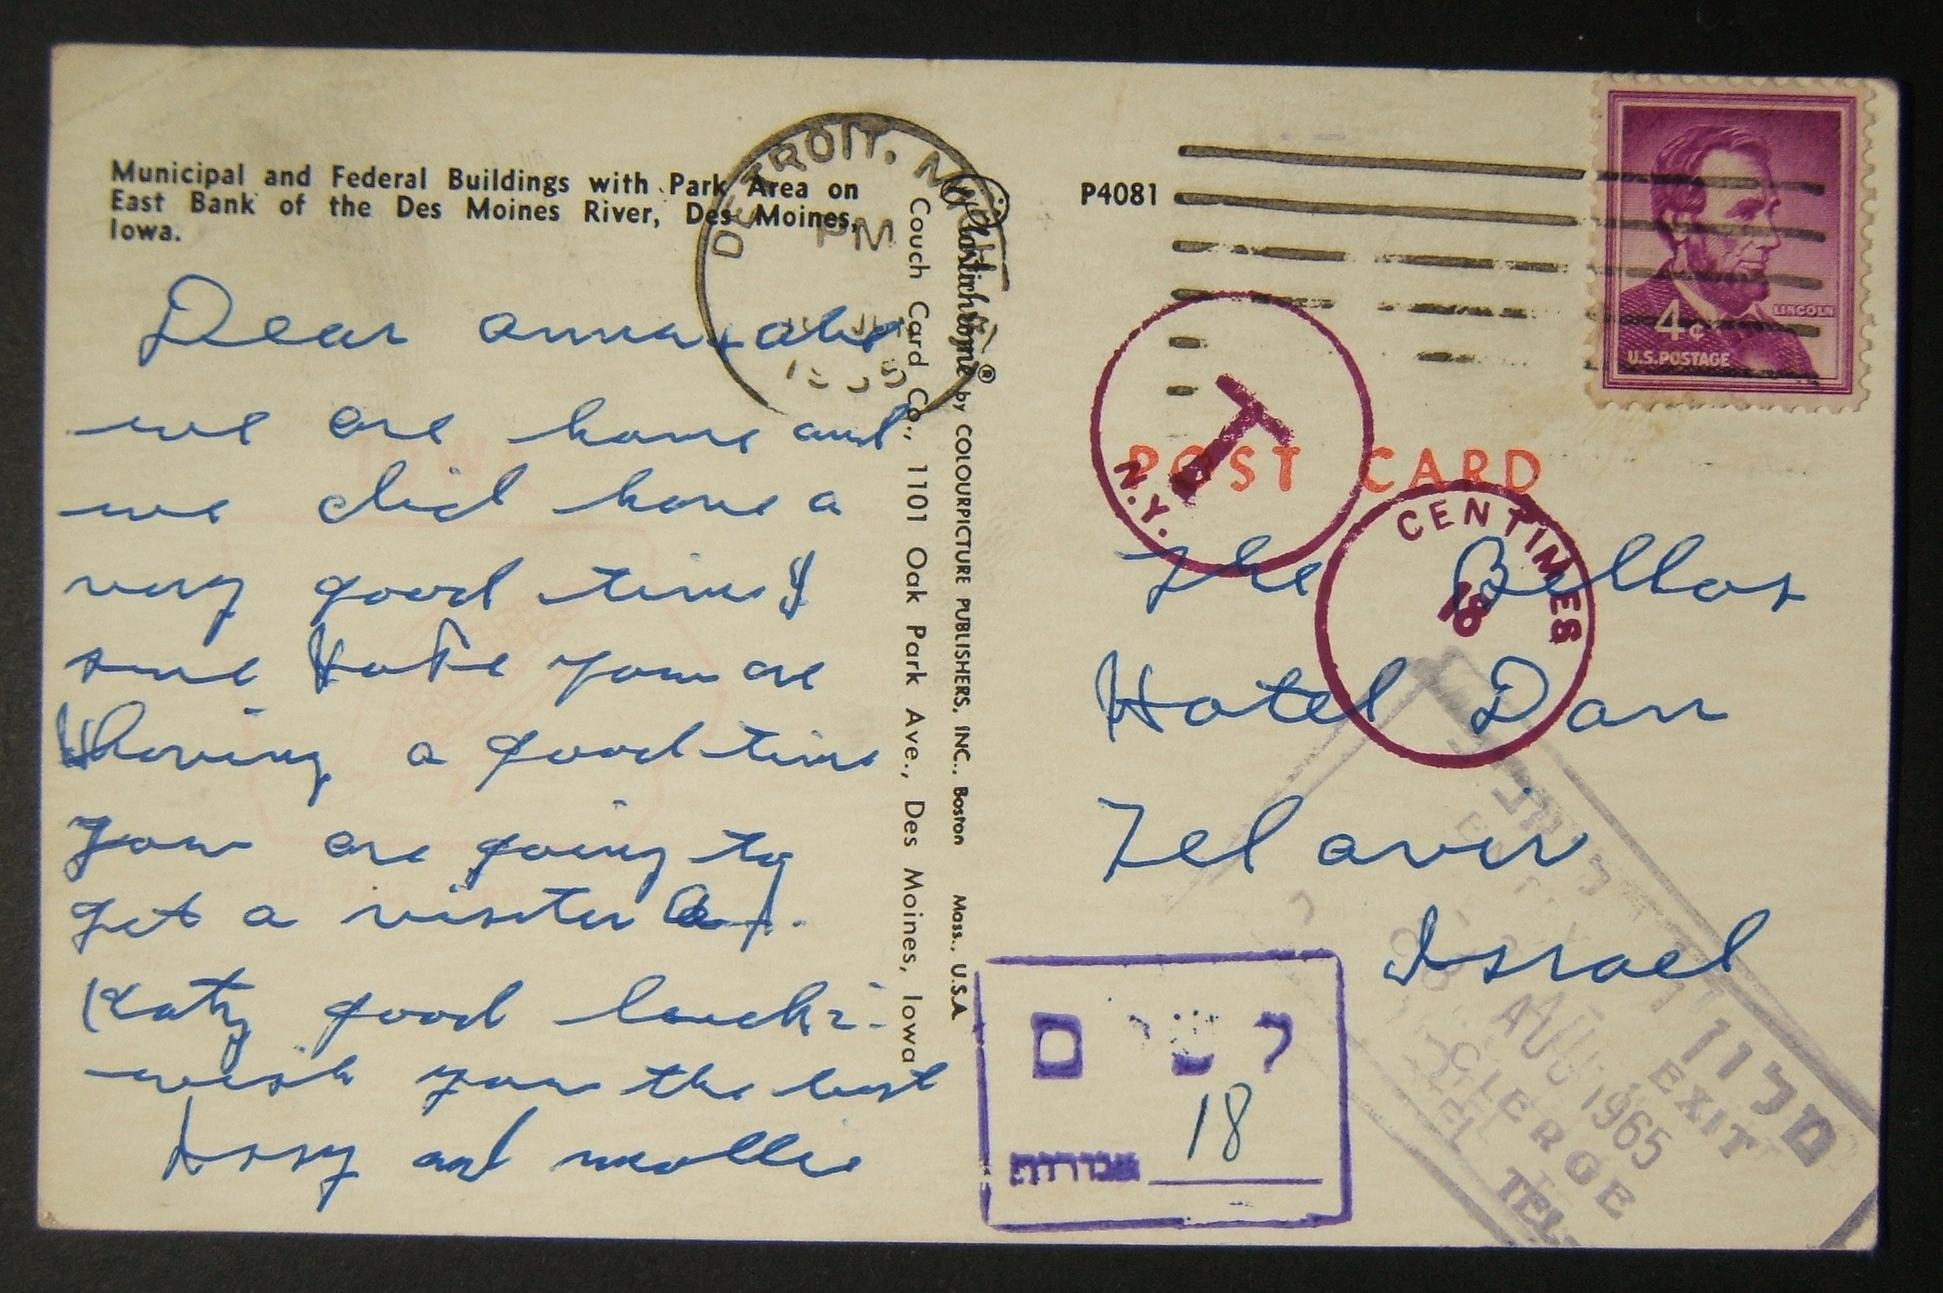 1965 incoming US taxed mail: c.10 JUN 1965 surface mailed ppc Des Moines ex DETROIT to TLV underfranked at 4c, marked for tax in NY and taxed in Israel for 18 Agorot; with Dan Hote